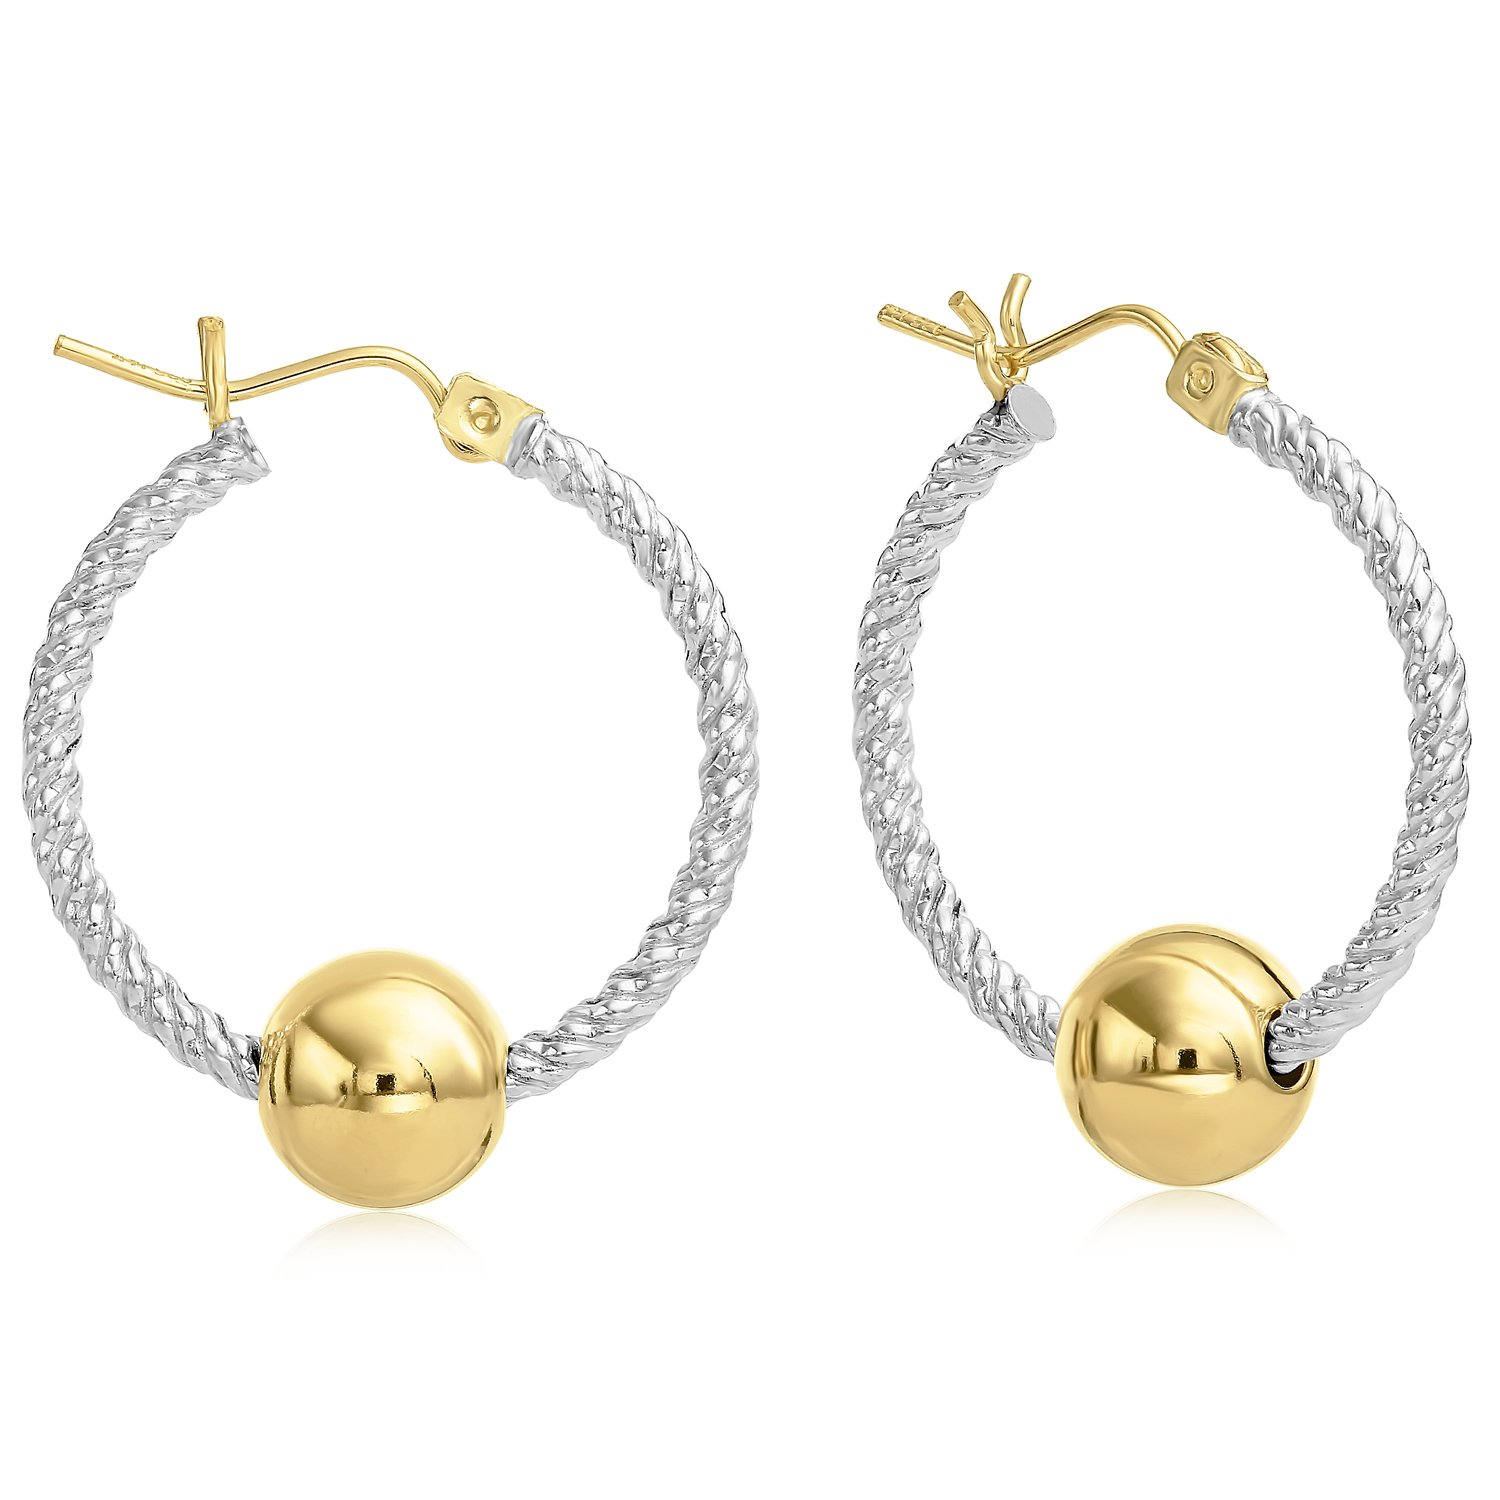 Premium Ocean side 14k Gold and Twisted Sterling Silver Earrings, Gold Post and Hinge - Small